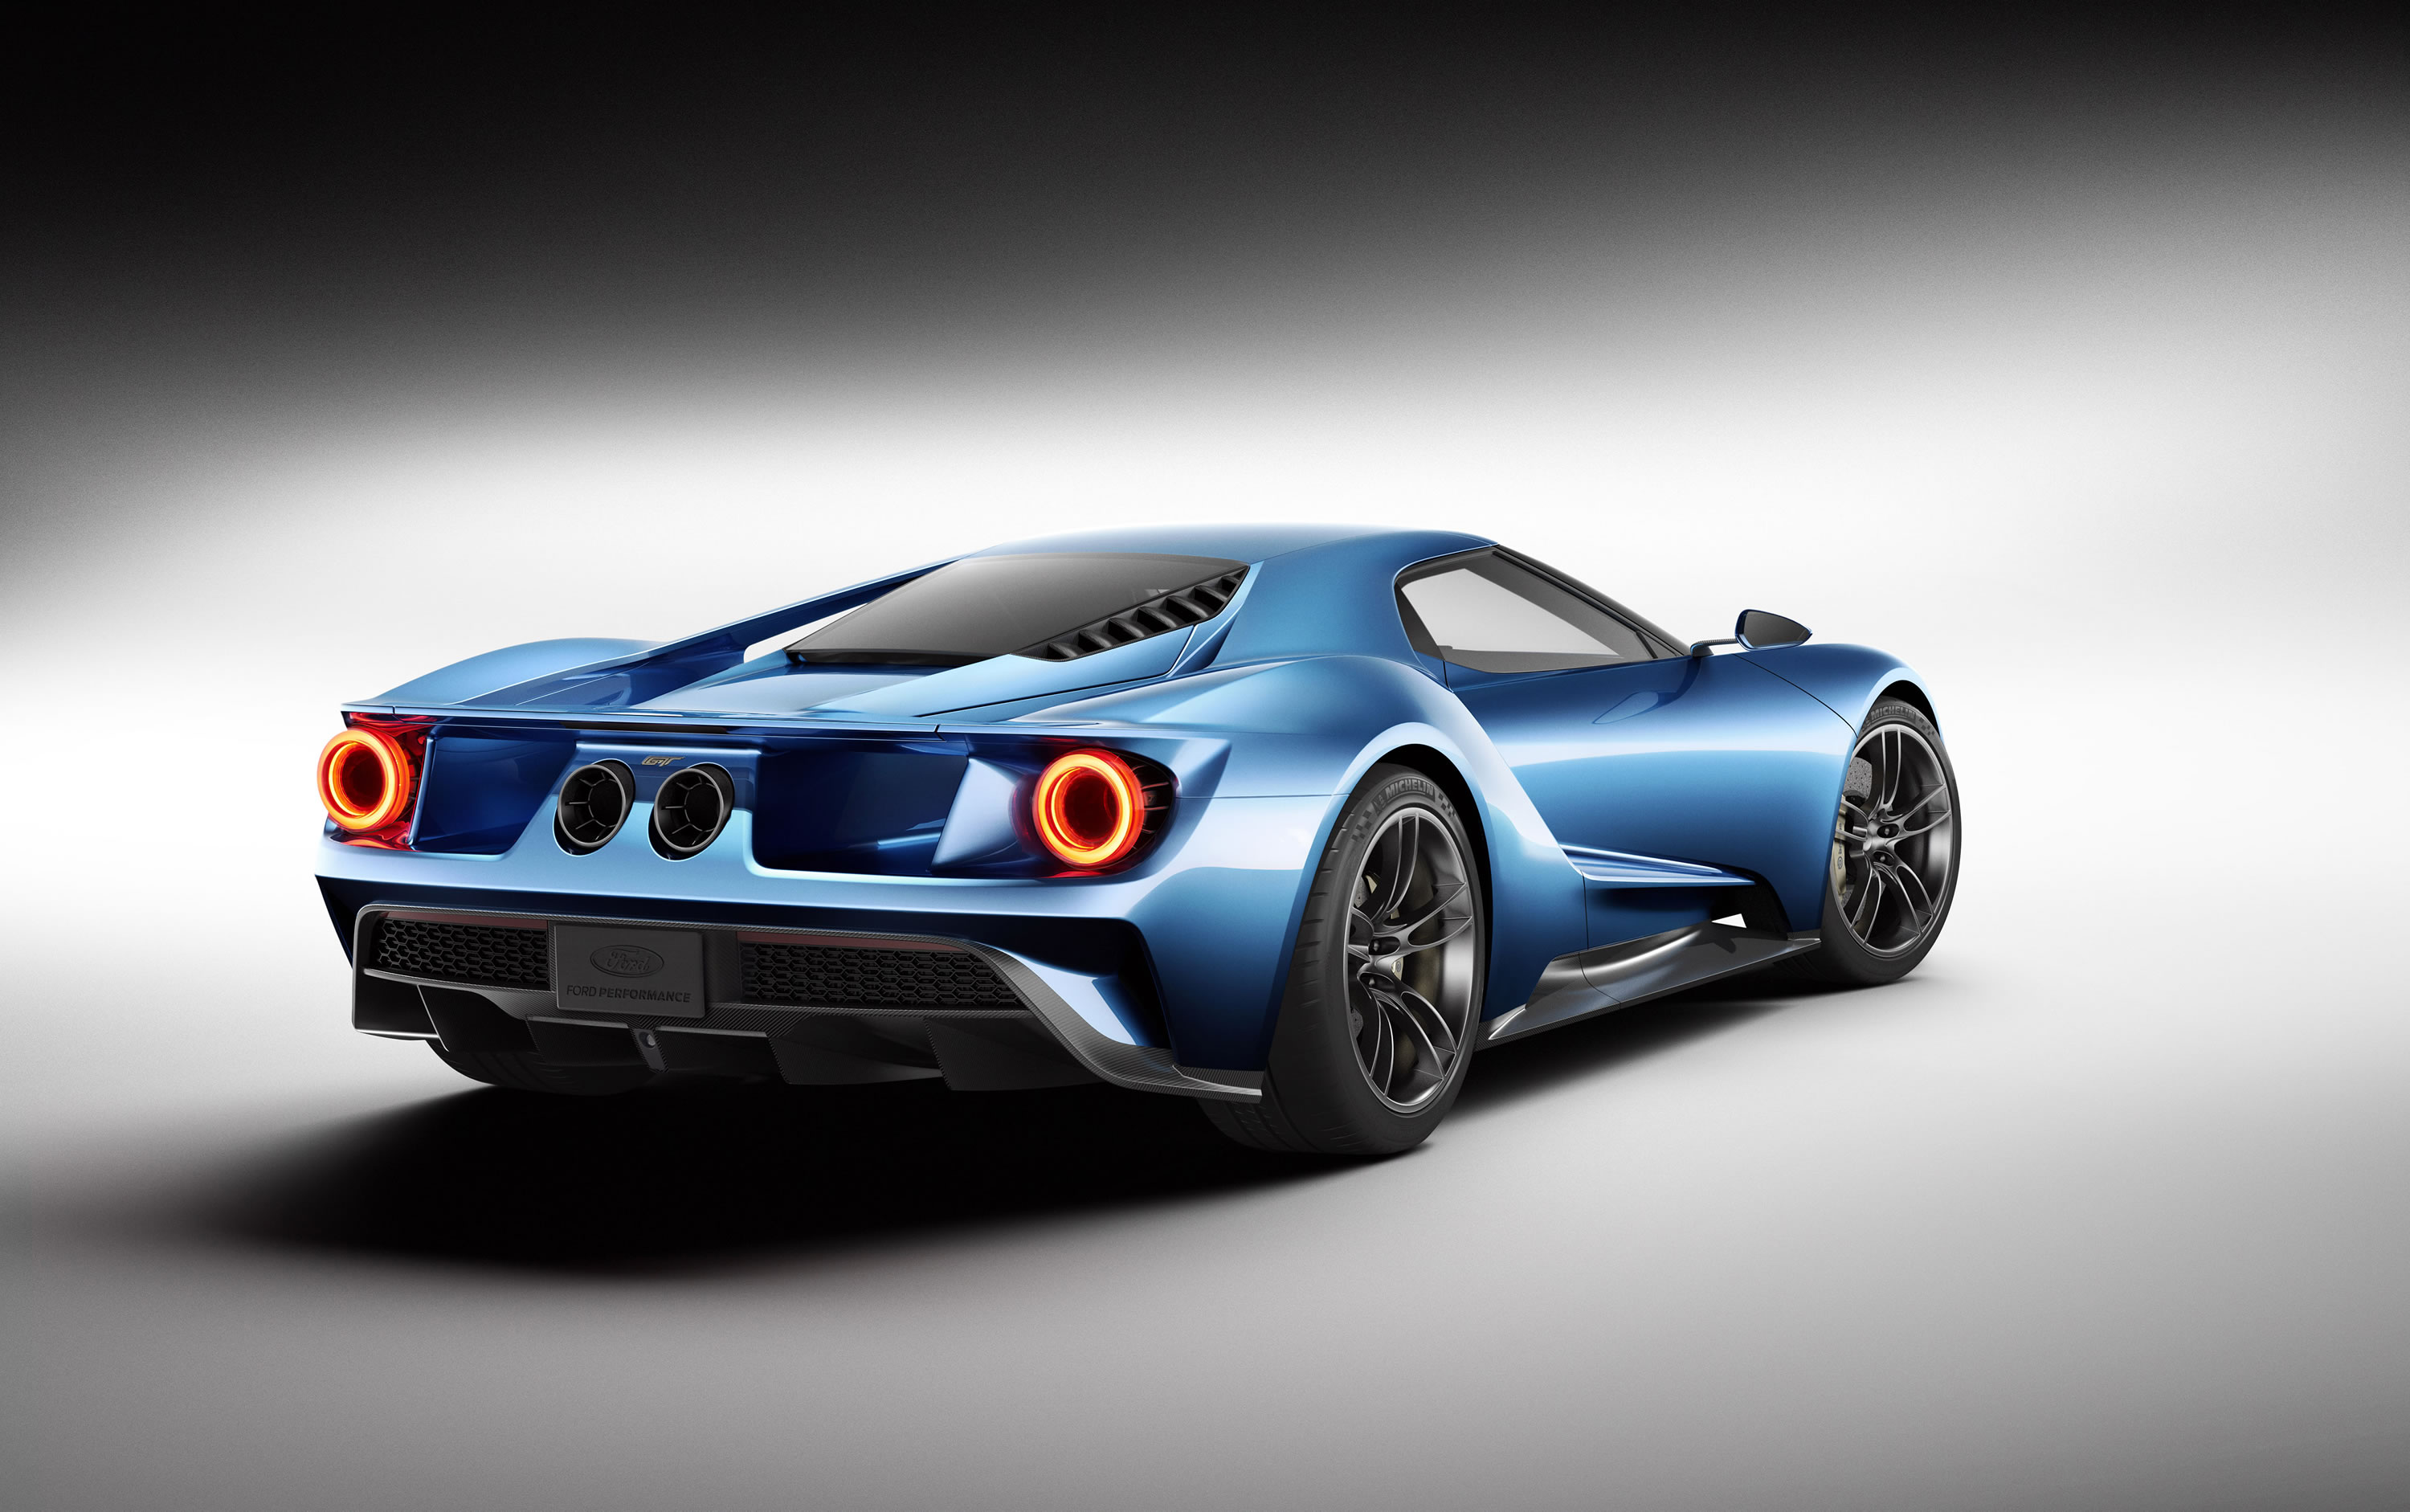 The Gt Hits The Road In  In Select Global Markets To Celebrate The Th Anniversary